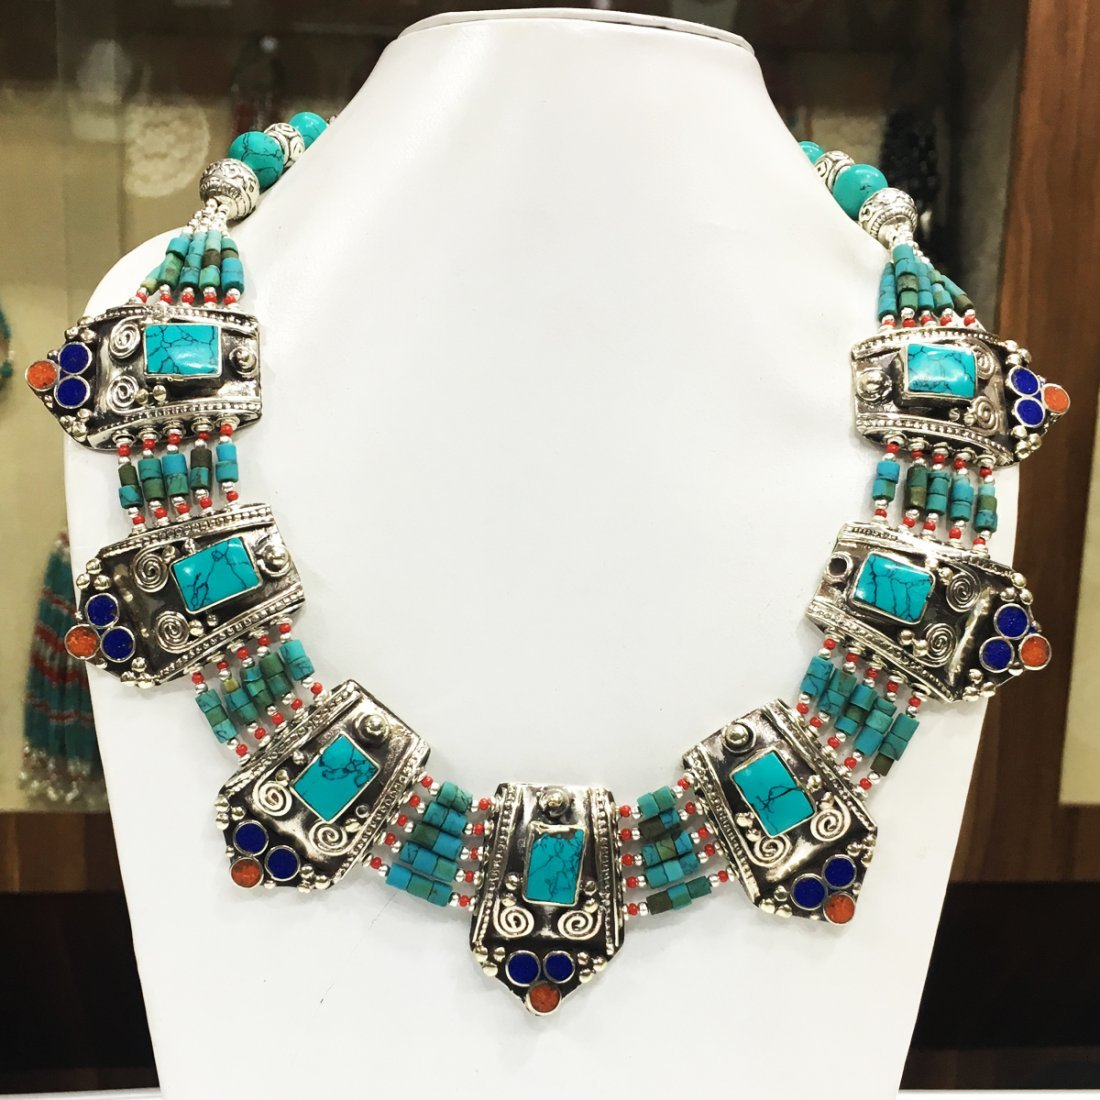 New Arrival Nepali Turquoise Coral Tibetan Necklace